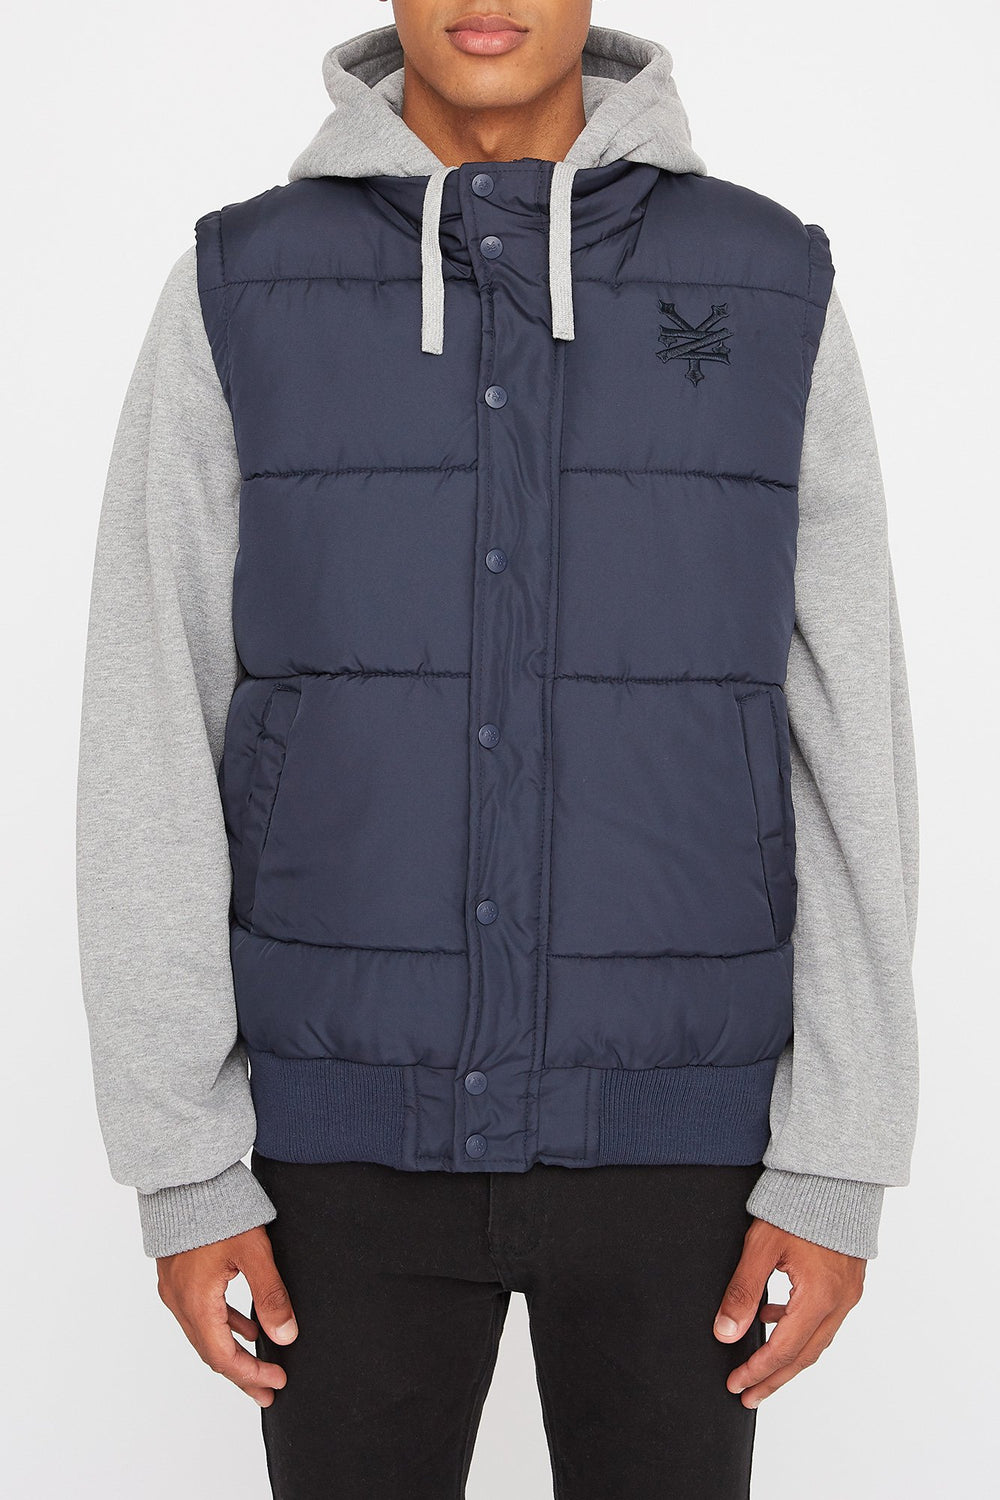 Zoo York Mens Hooded Puffer Vest Navy